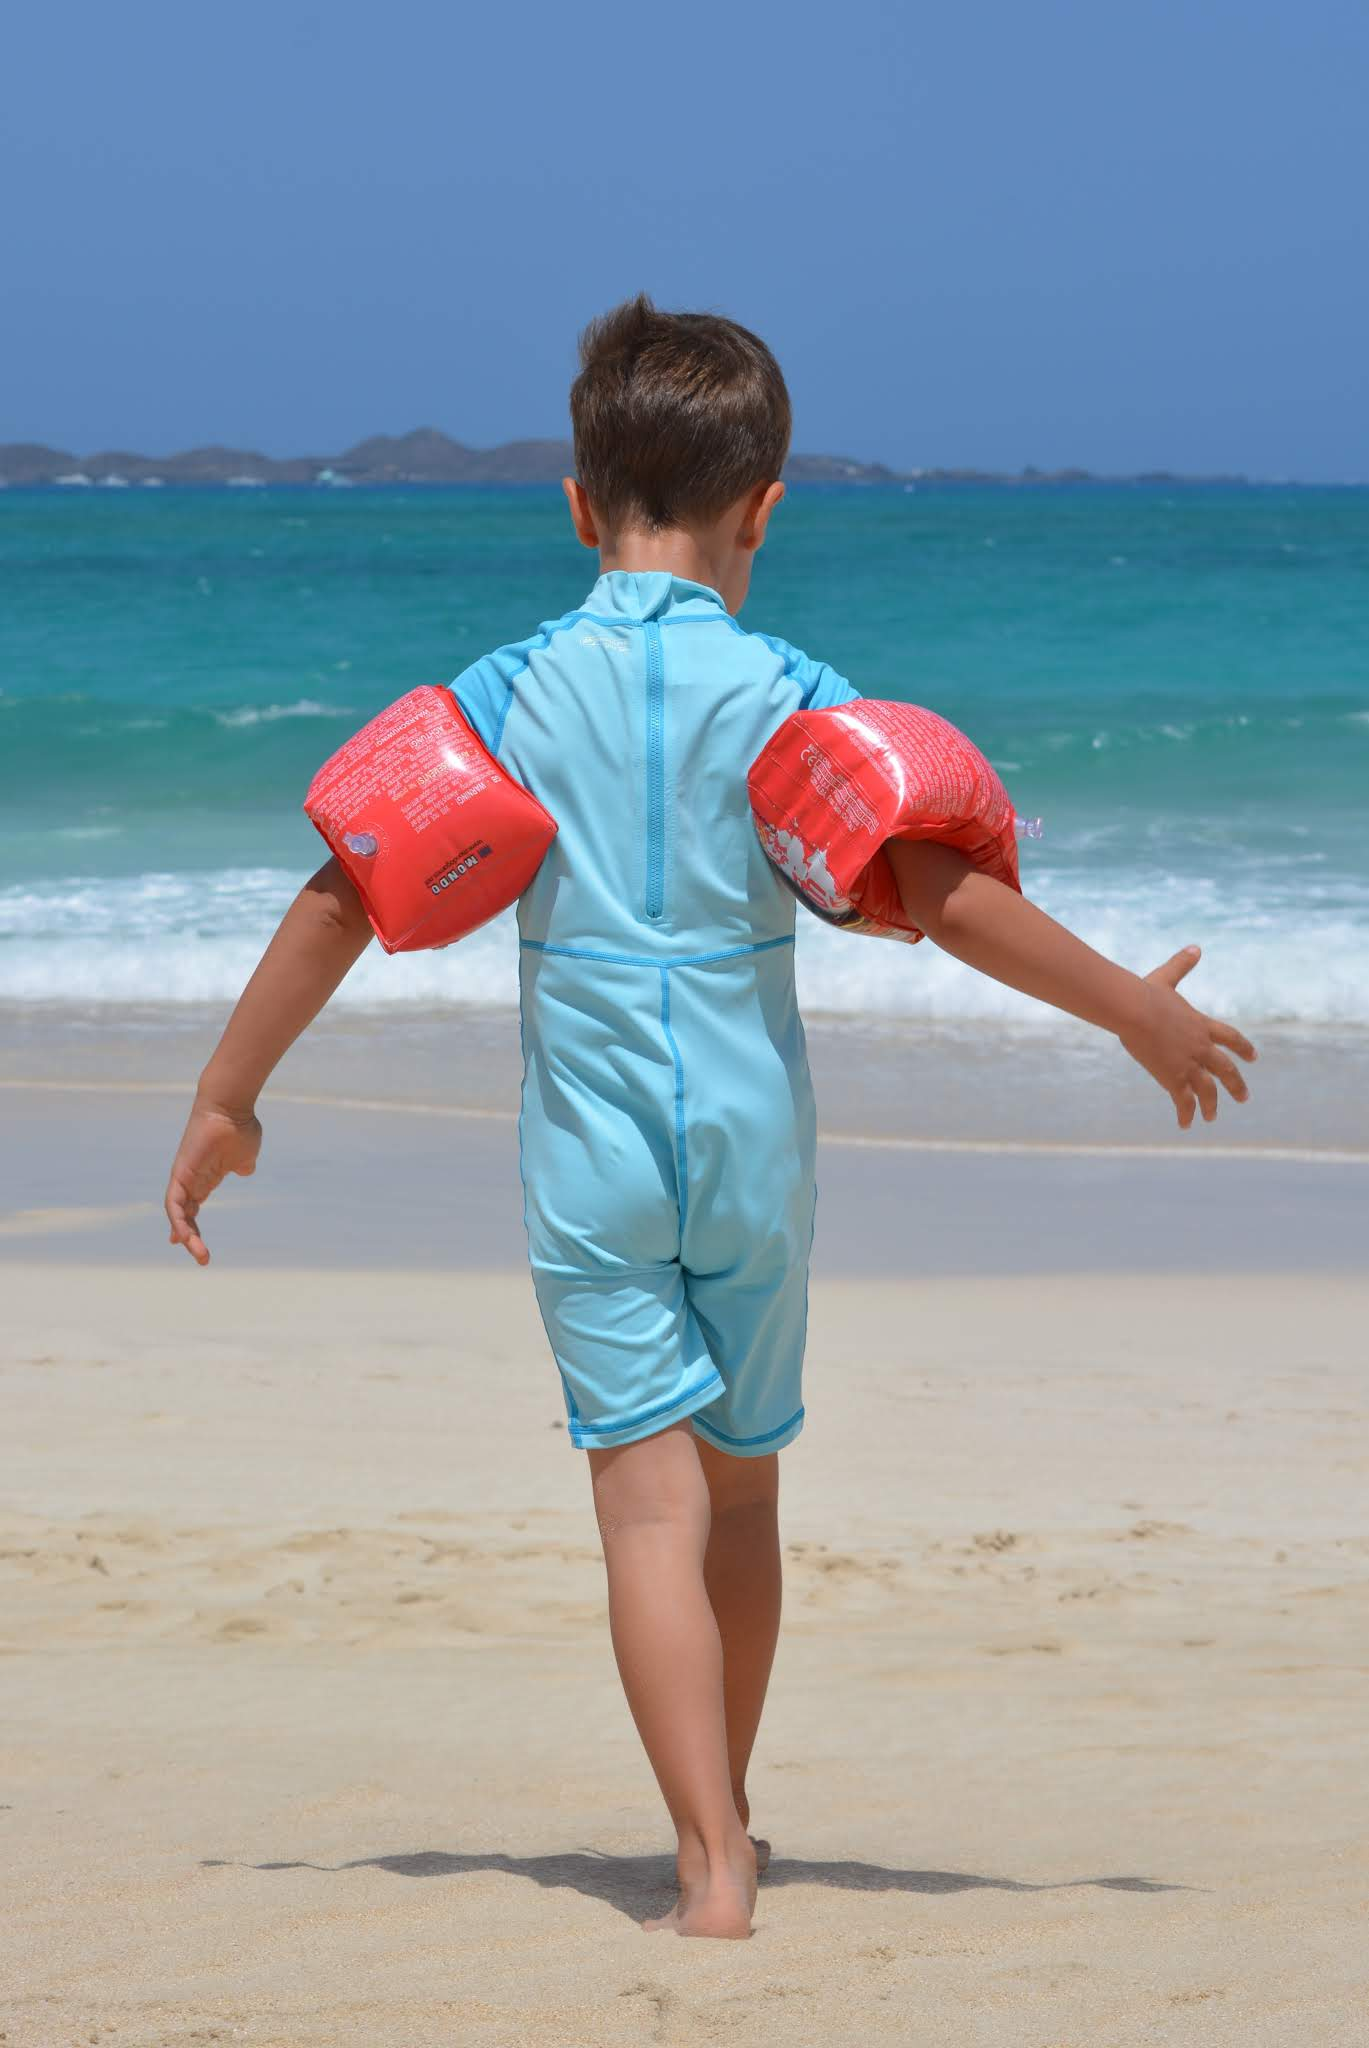 Protective gear for children